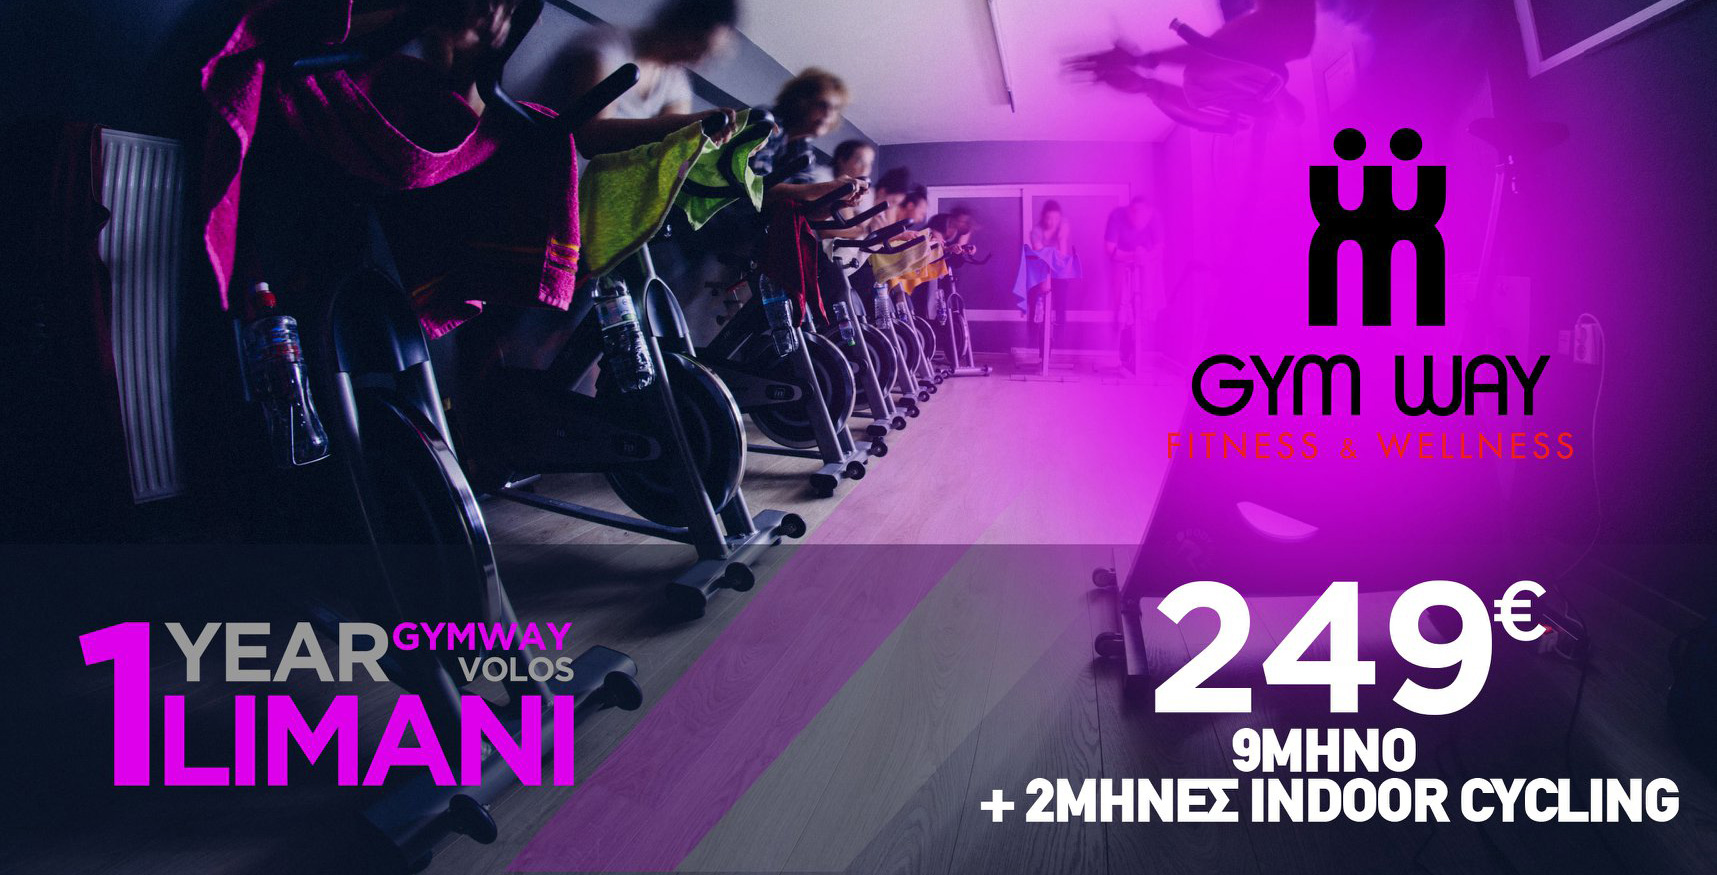 Gym Way fitness & wellness at the Port of Volos celebrates its first year of operation!